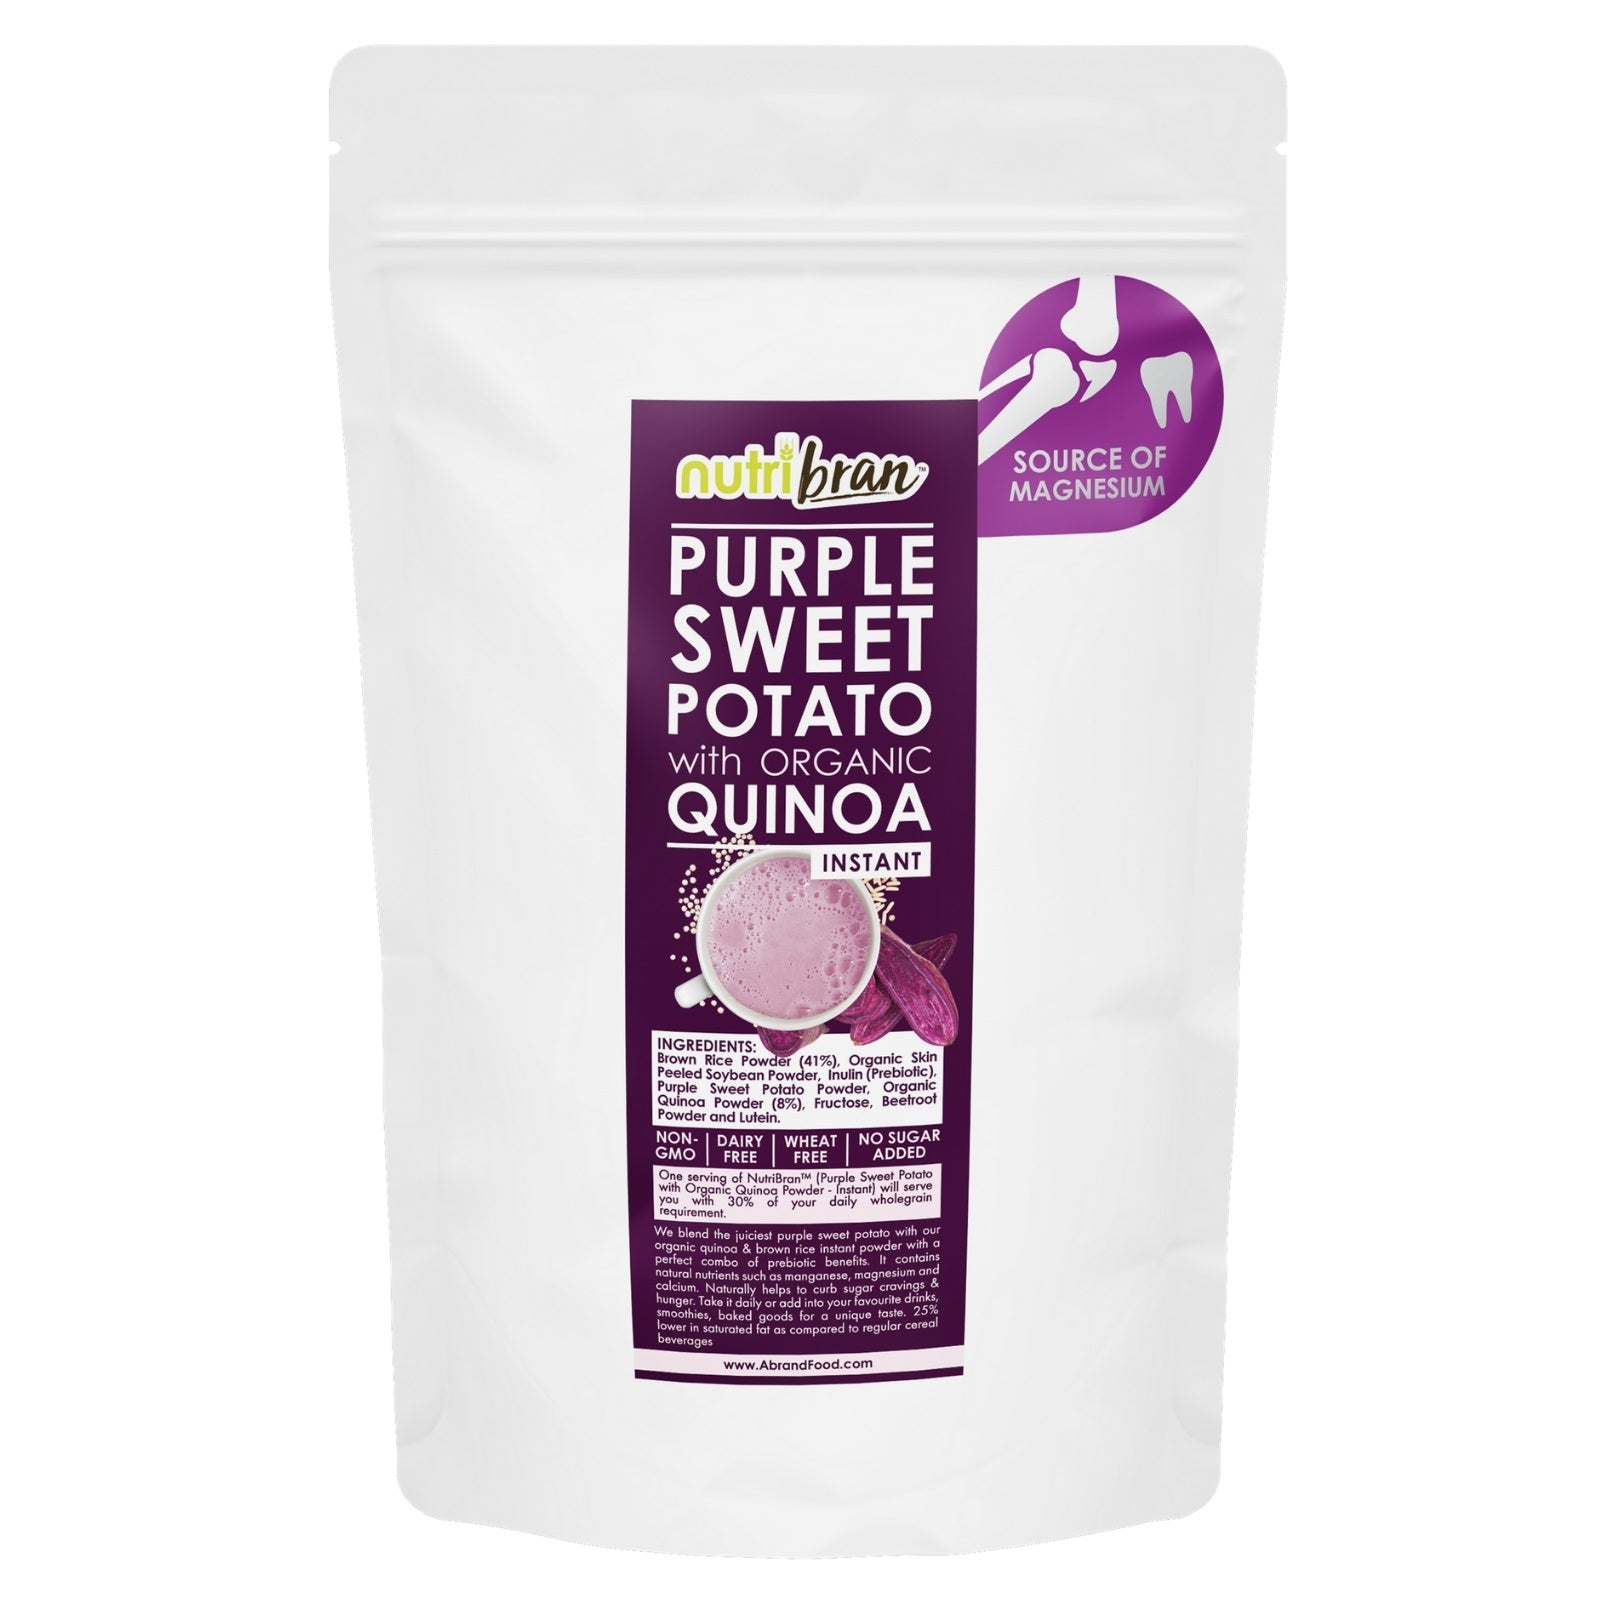 NutriBran Purple Sweet Potato with Organic Quinoa Instant Powder - 300g